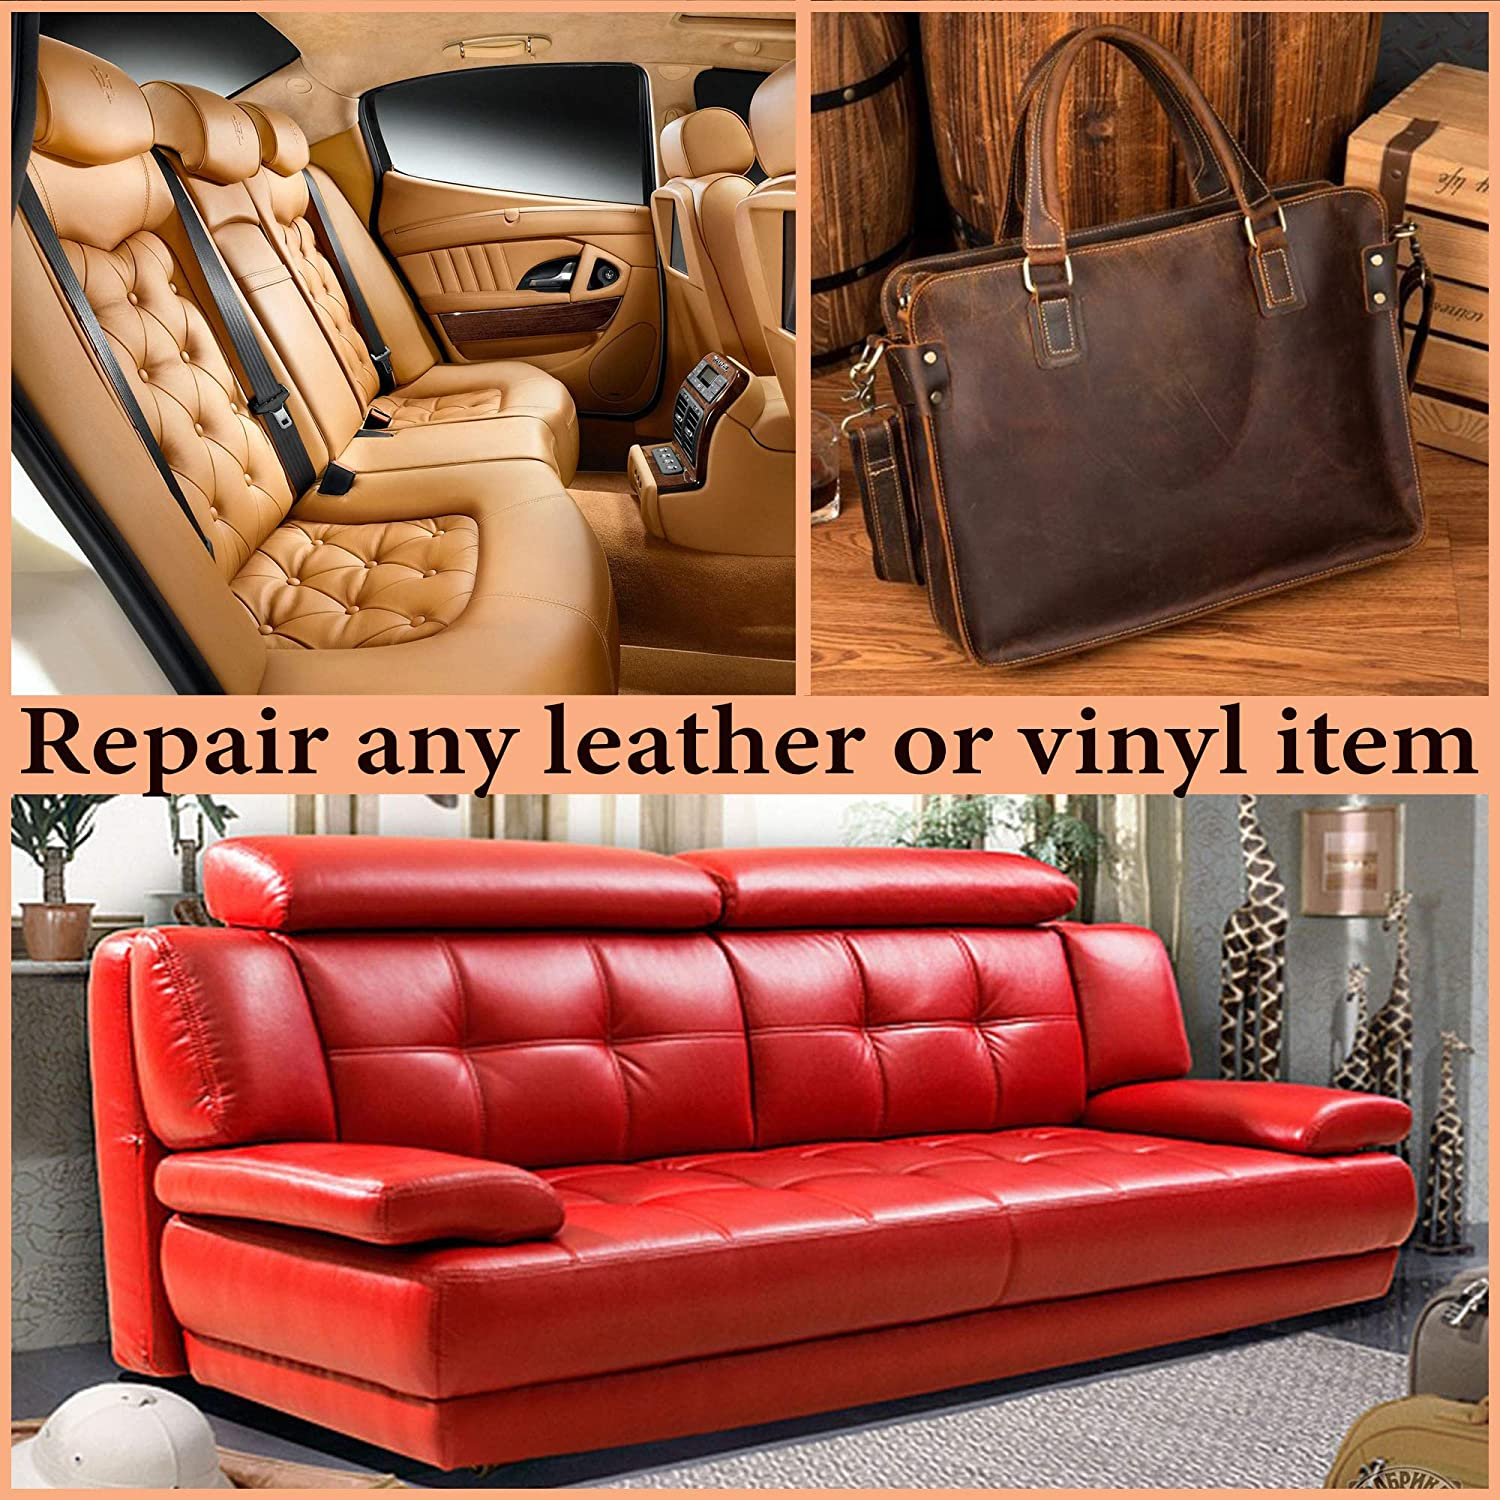 Awe Inspiring Leather Repair And Vinyl Repair Kit Vinyl And Leather Patch For Car Seat Boat Seats Shoe Repair Couches Repair Furniture Sofa Leather Handbag Car Creativecarmelina Interior Chair Design Creativecarmelinacom